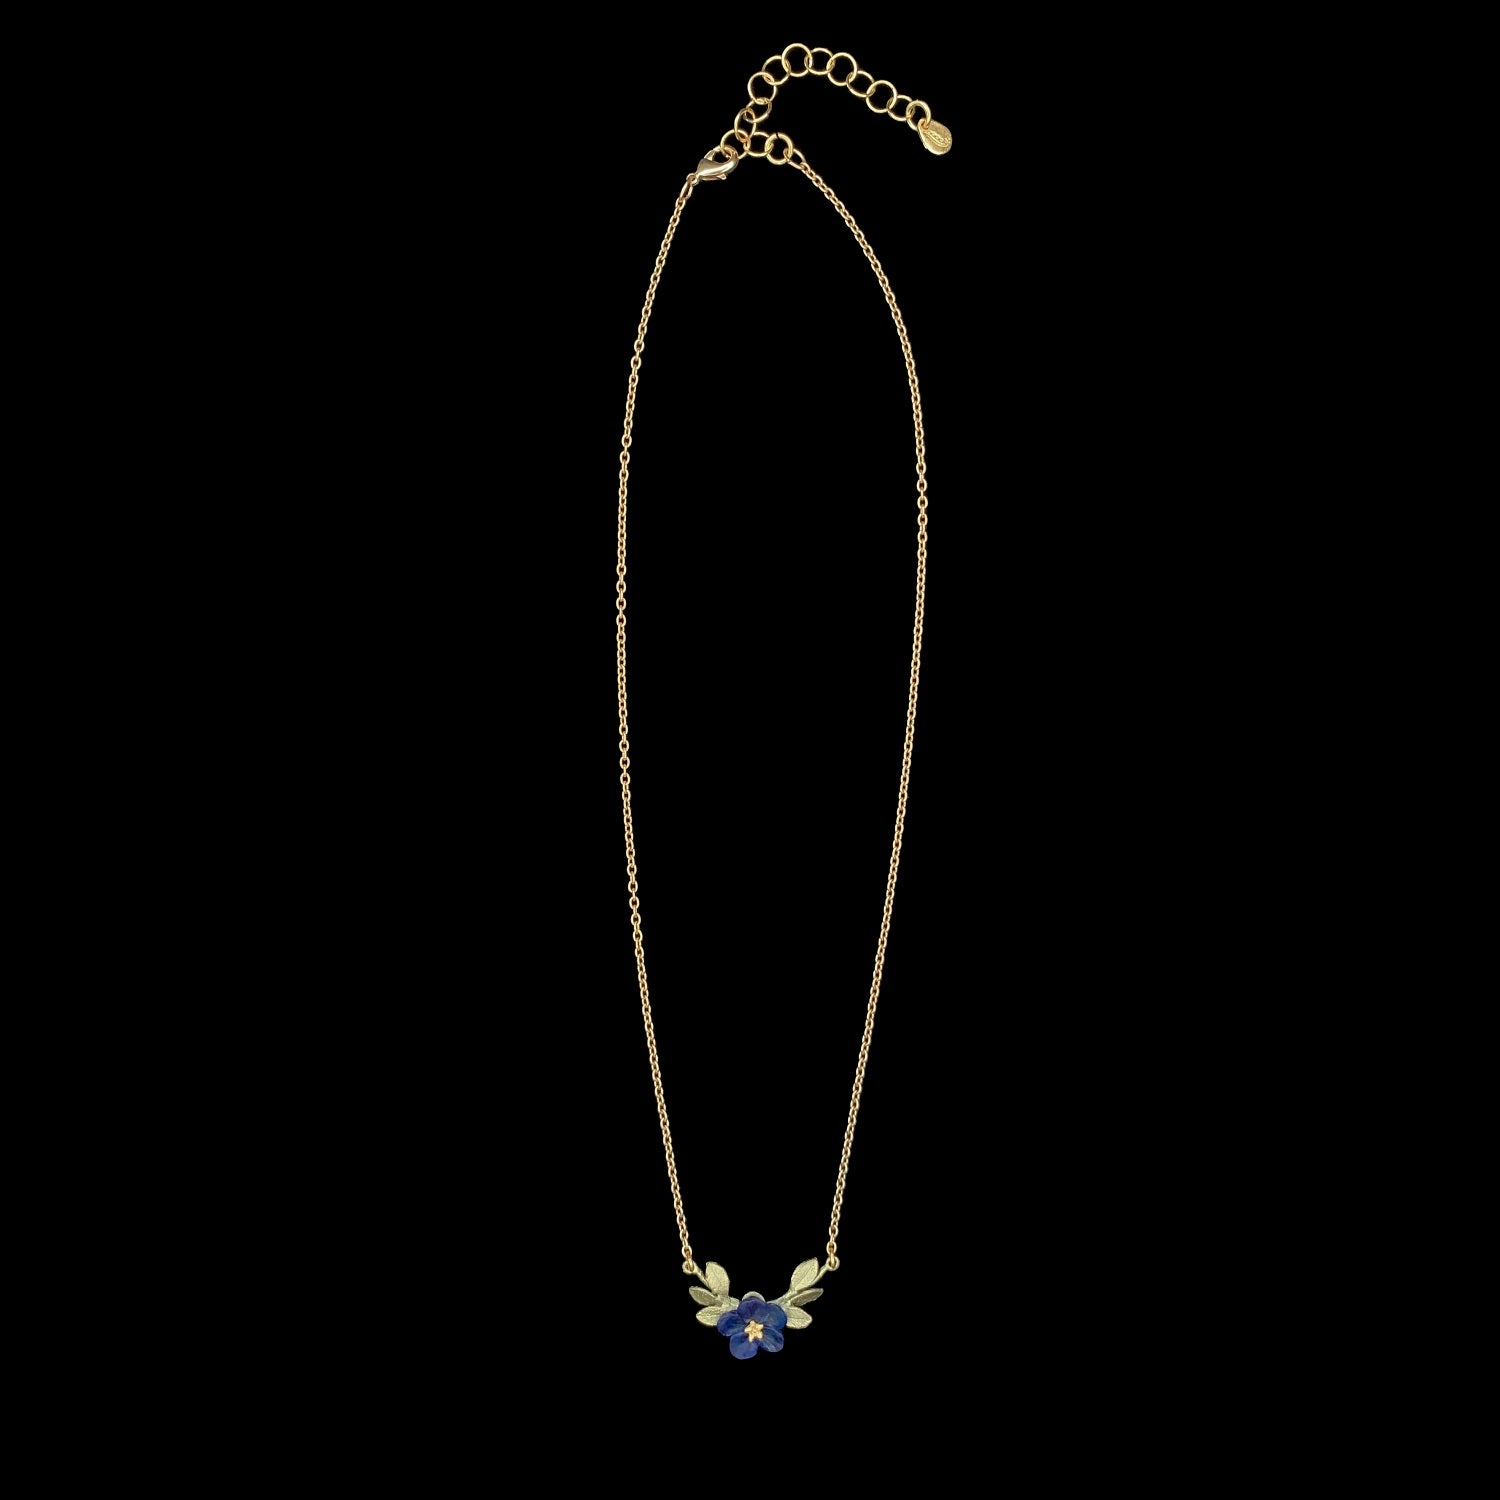 Blue-Eyed Mary Pendant - Single Flower